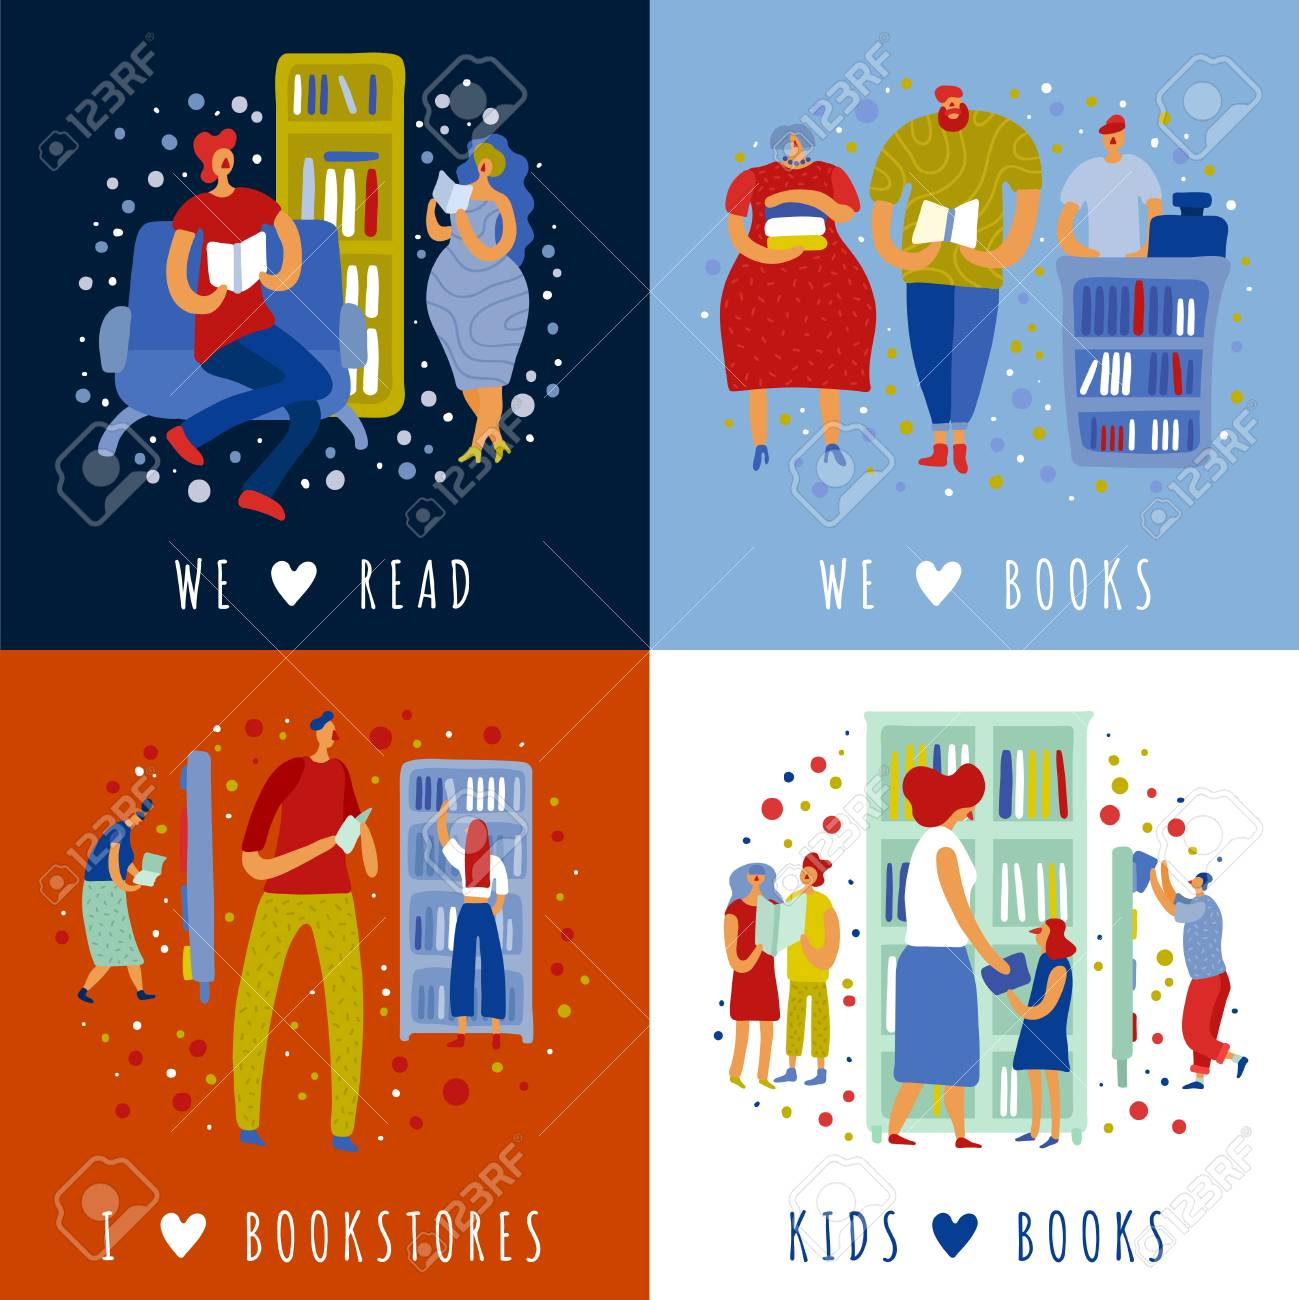 People adults and kids in book store during reading and literature purchase design concept isolated vector illustration - 128160324